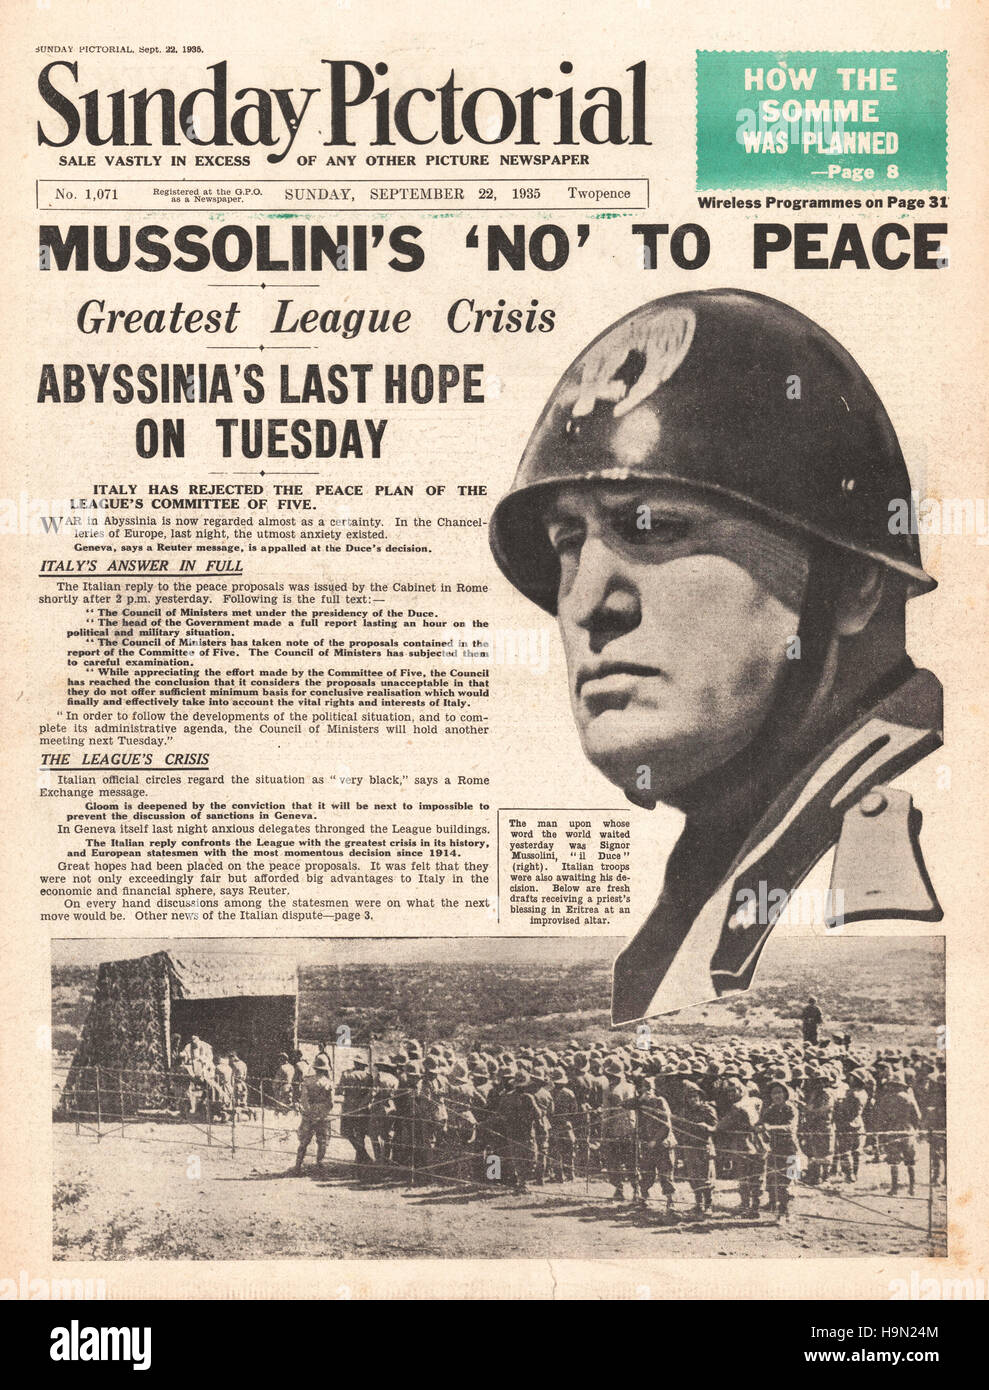 1936 Sunday Pictorial front page Italy at war with Abyssinia Stock Photo -  Alamy